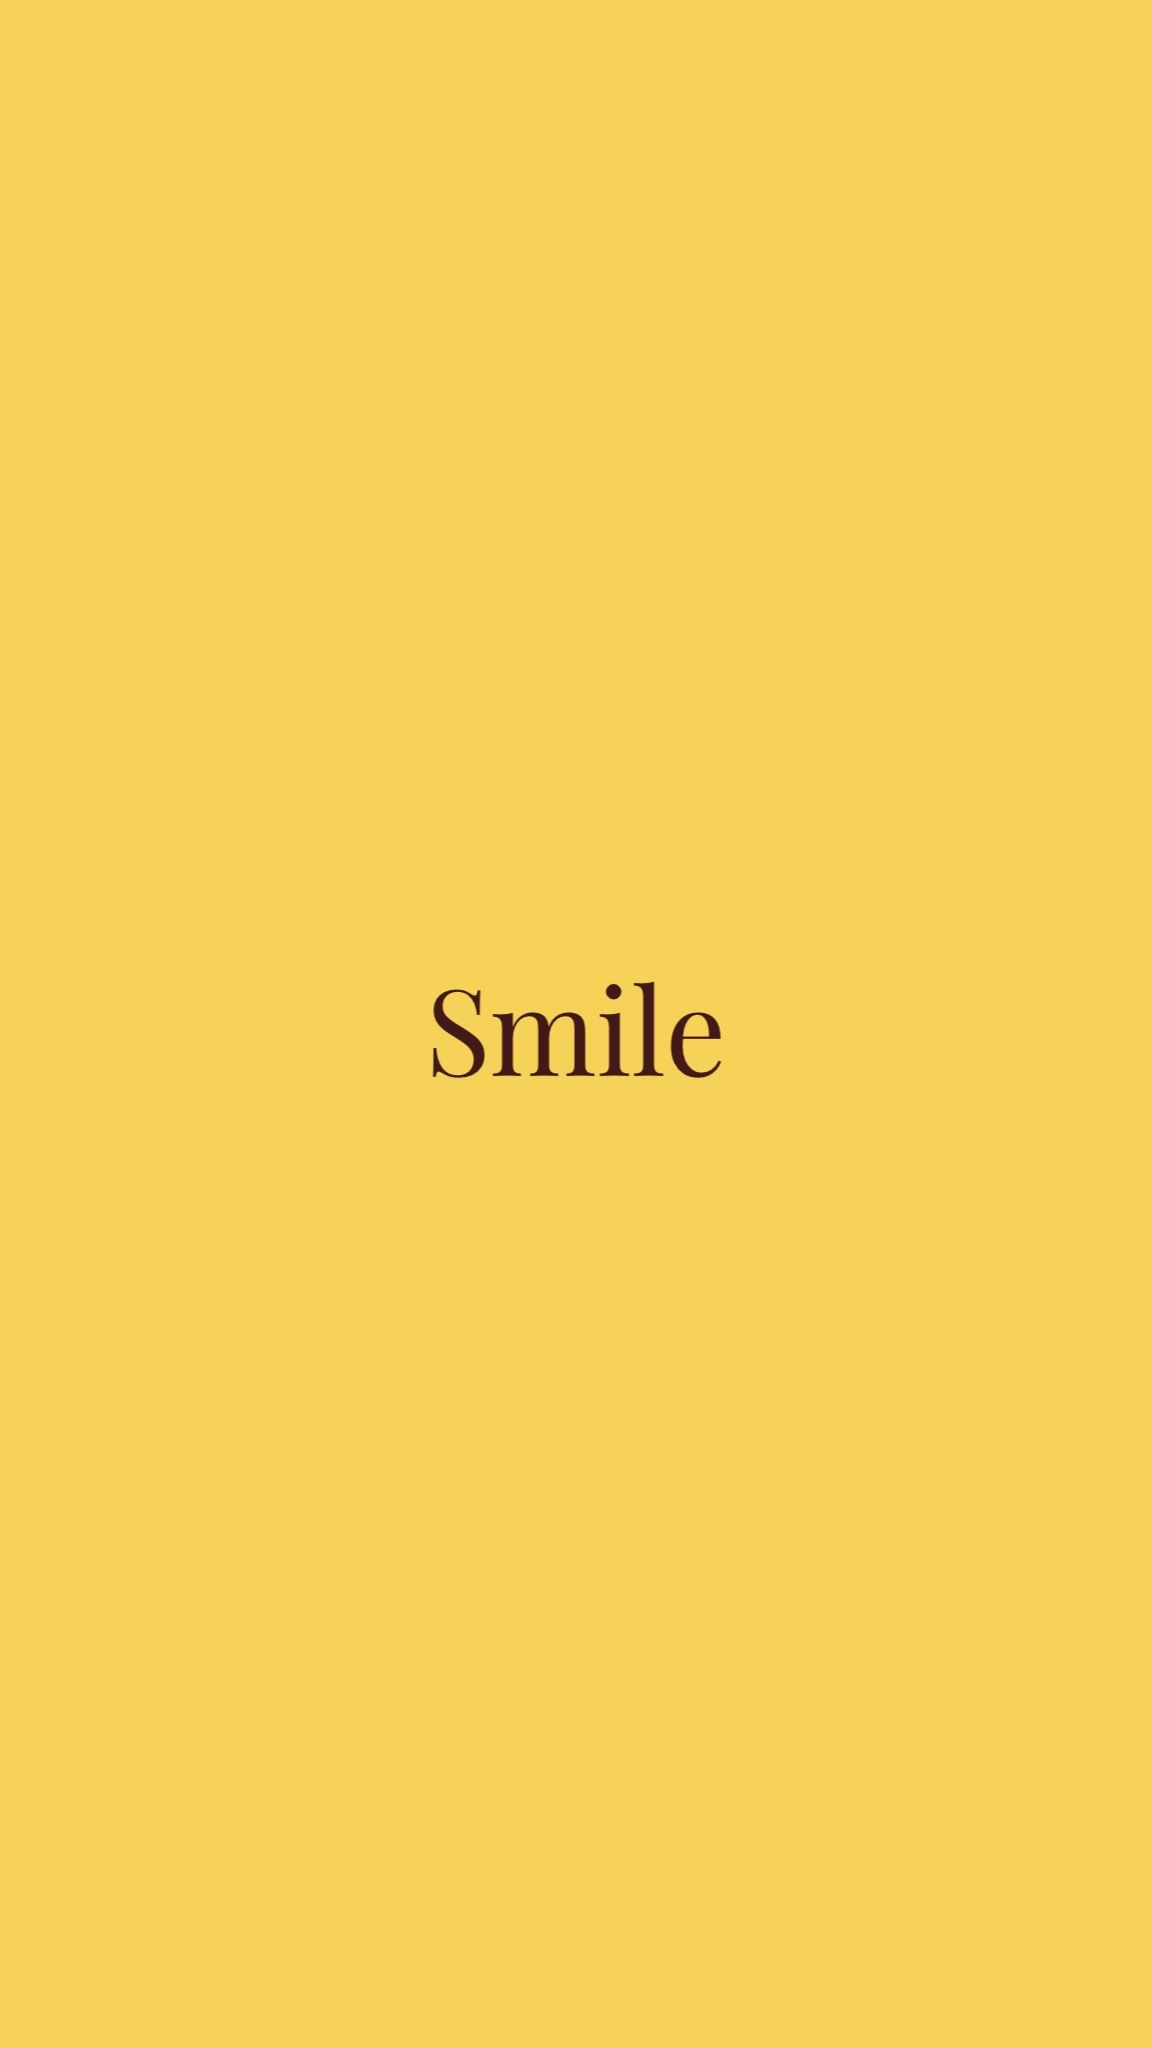 Smile Yellow Quotes Lovely Yellow Quotes Iphone